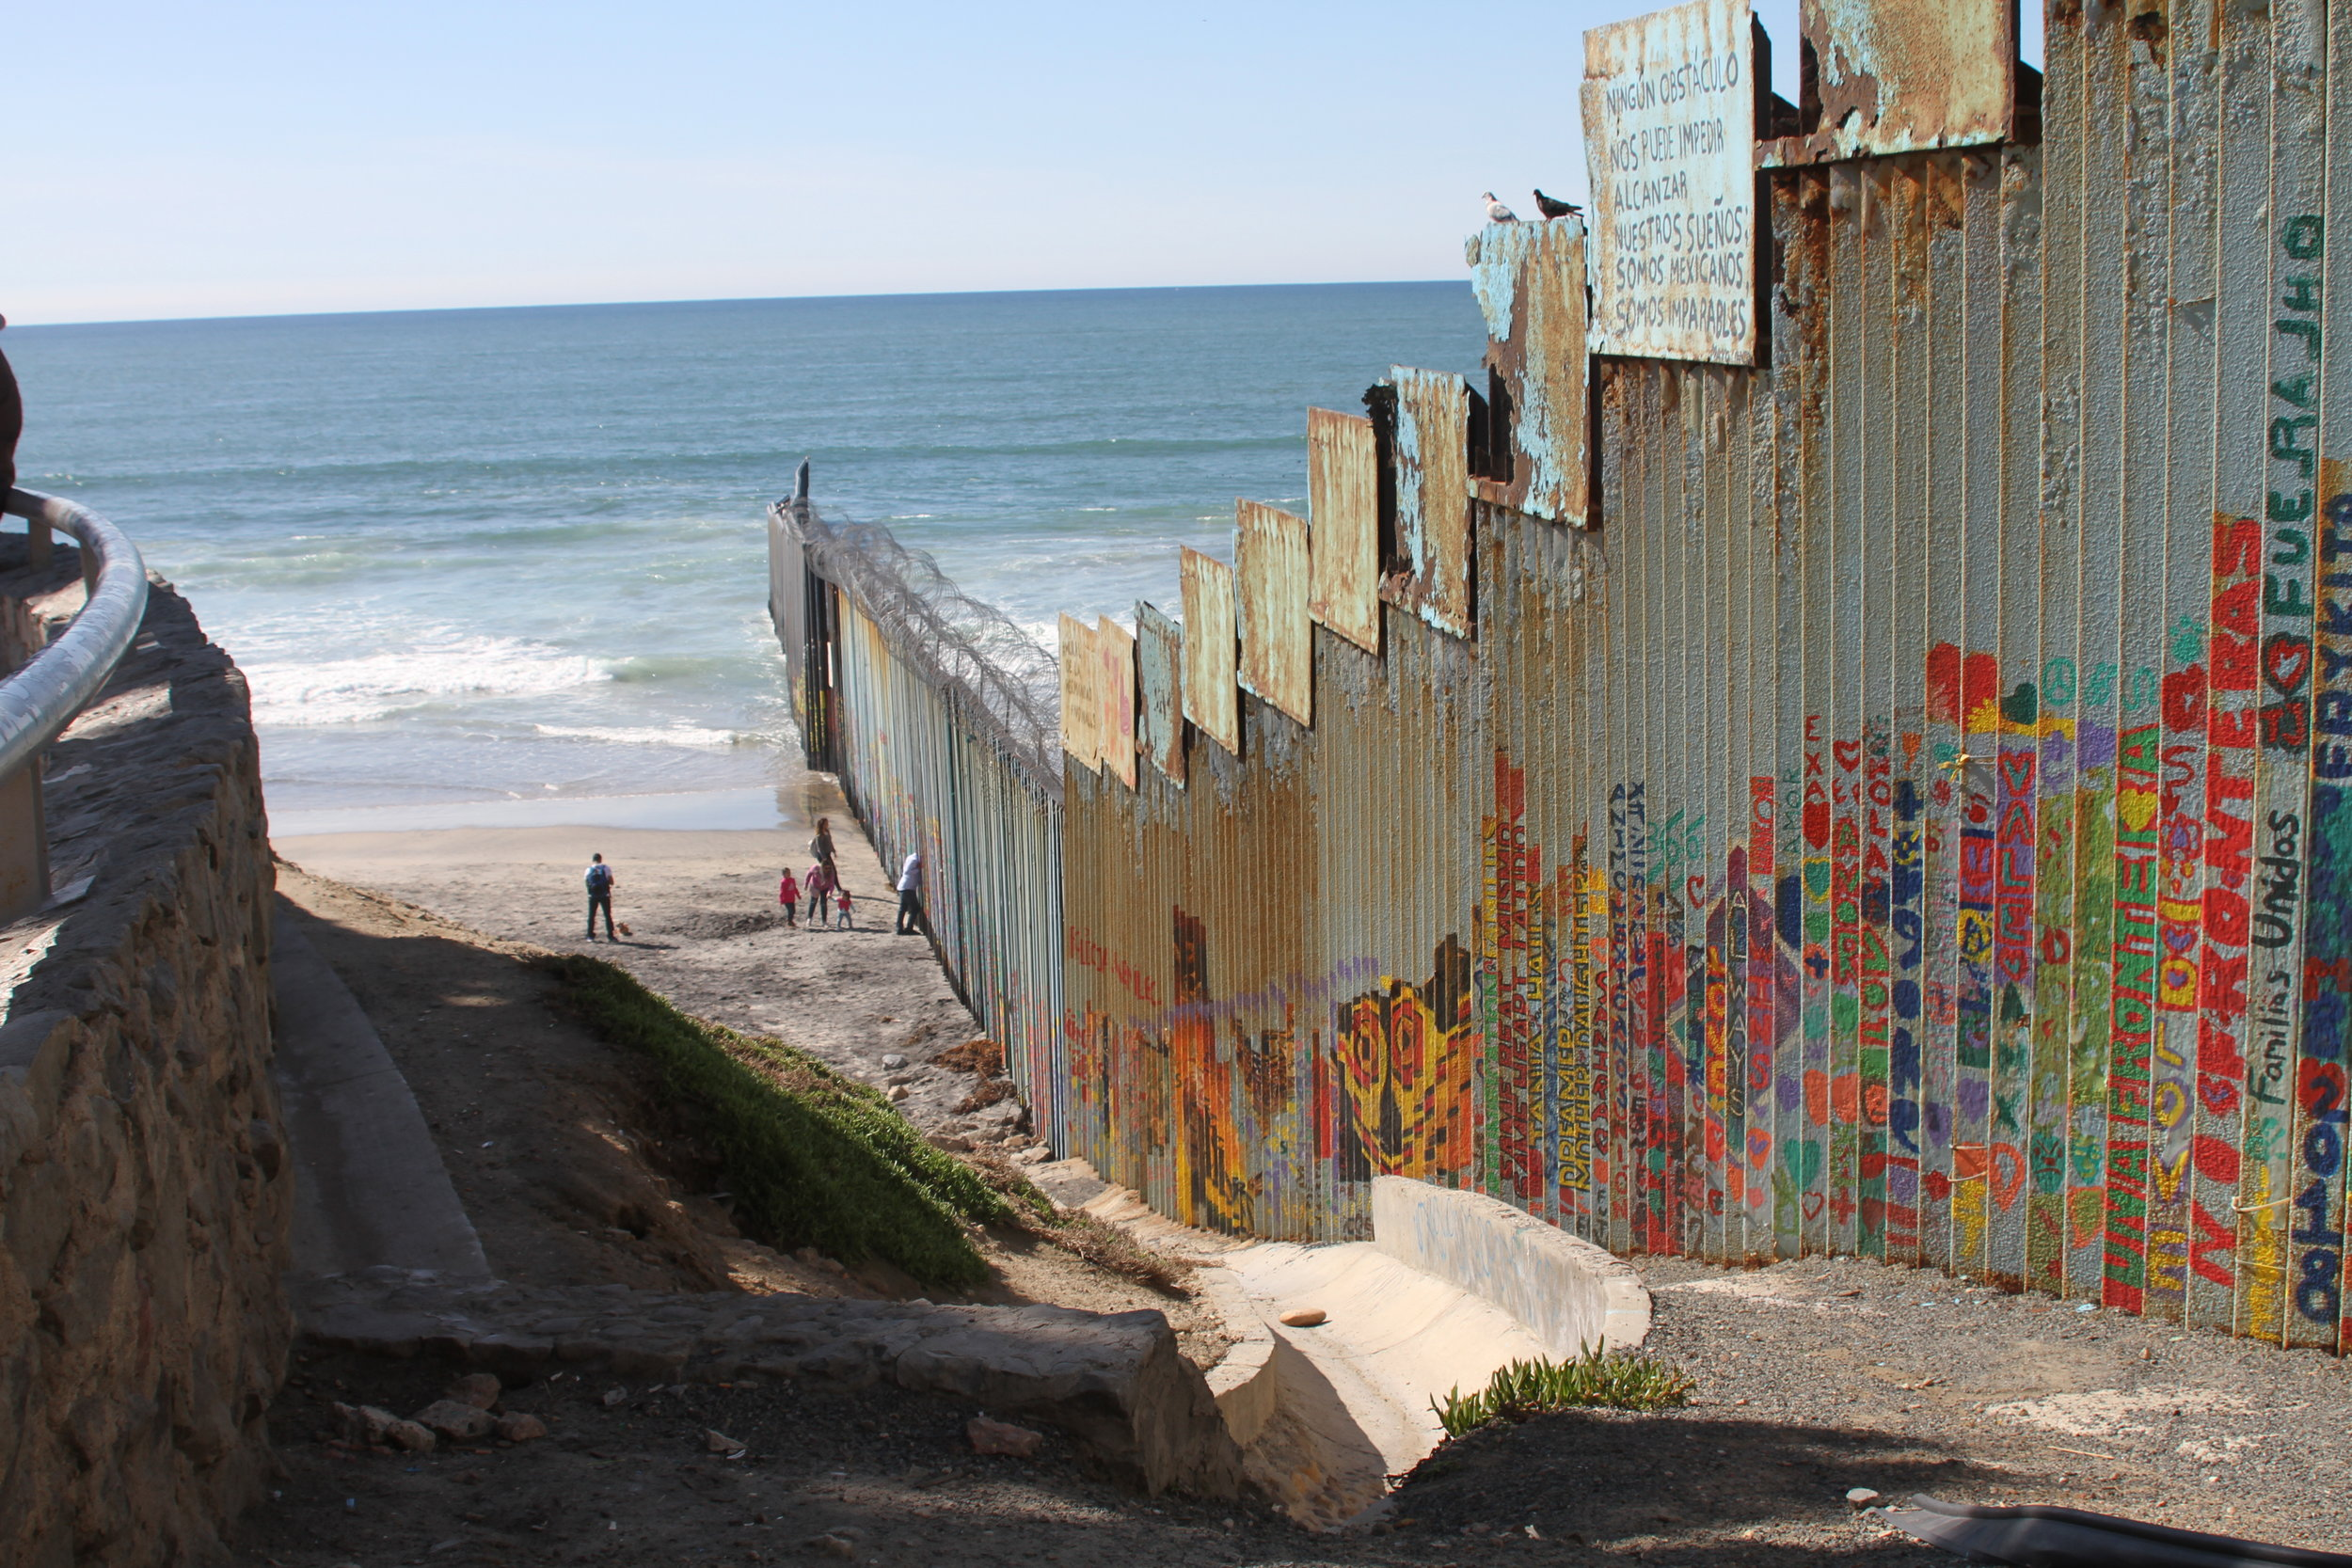 The US-Mexican border wall in Playas de Tijuana in Tijuana, Mexico on Saturday, February 23, 2018. Photo by: Ryanne Mena.